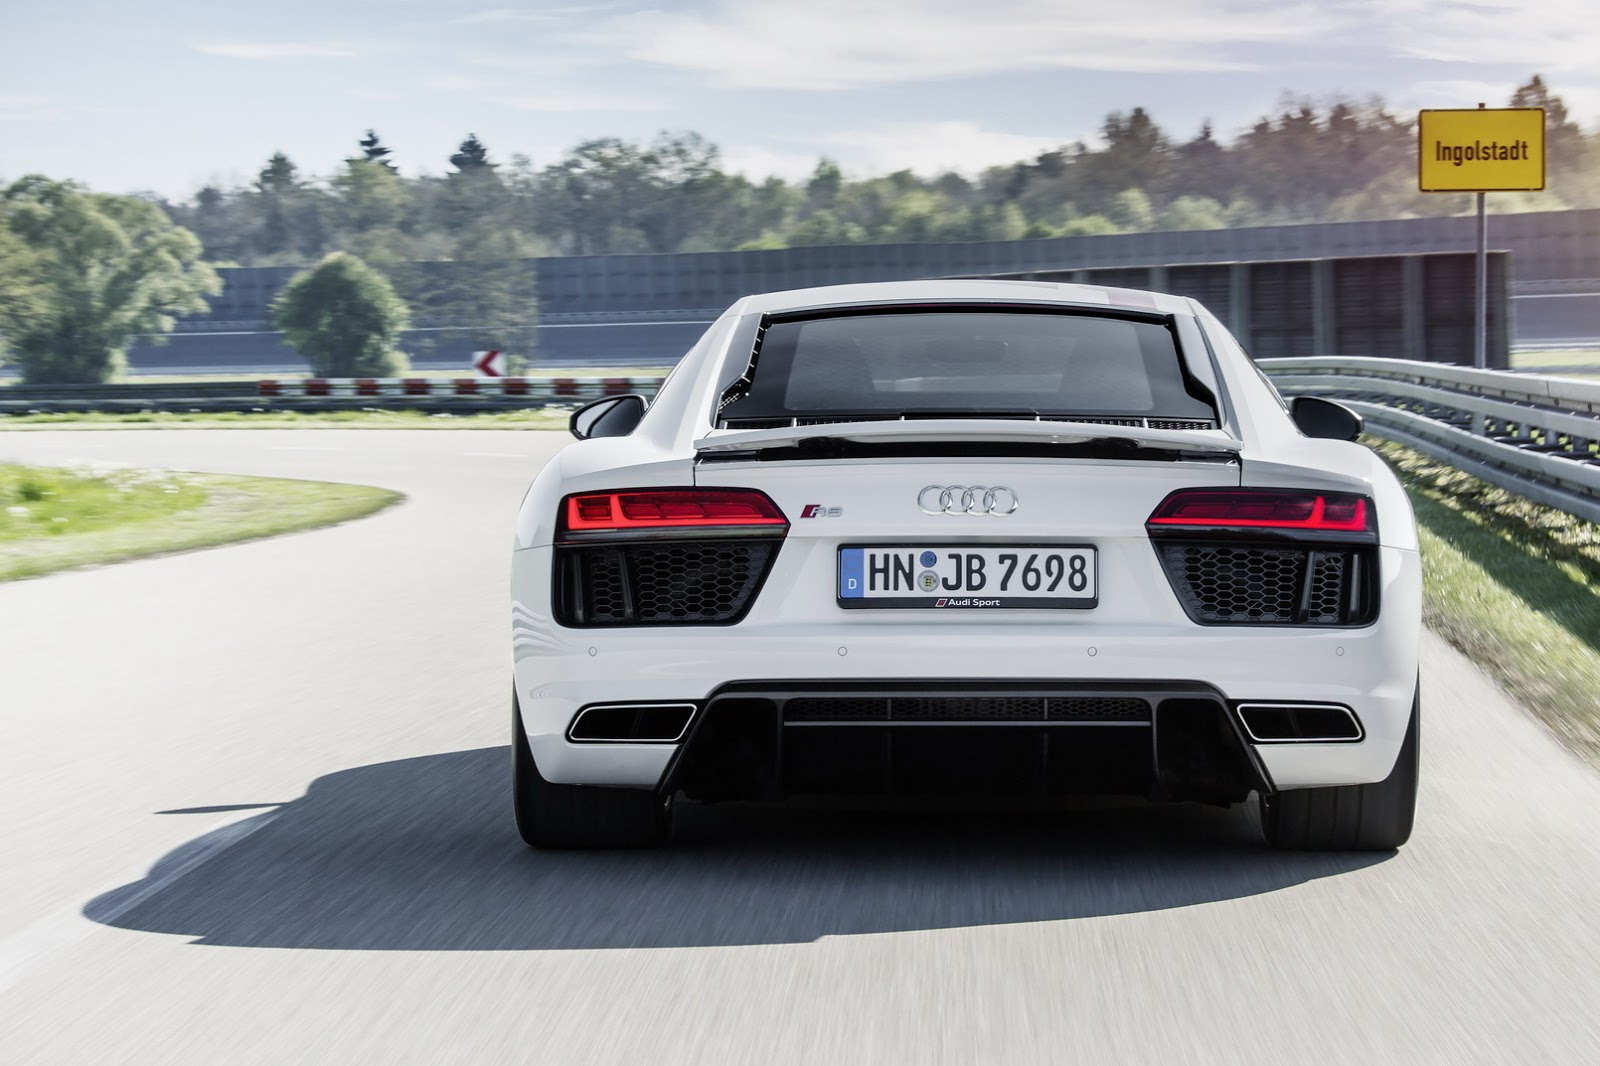 Audi Plans To Kill Off V10 And W12 Engines, PPE Platform Comes Into on audi r8 lms, audi r8 w1-2 hd, audi r8 convertible, audi r8 v12, audi r8 w16, audi r8 gt, audi a6 w1-2, audi r8 v10 tdi, audi r8 v6, audi r8 v8,